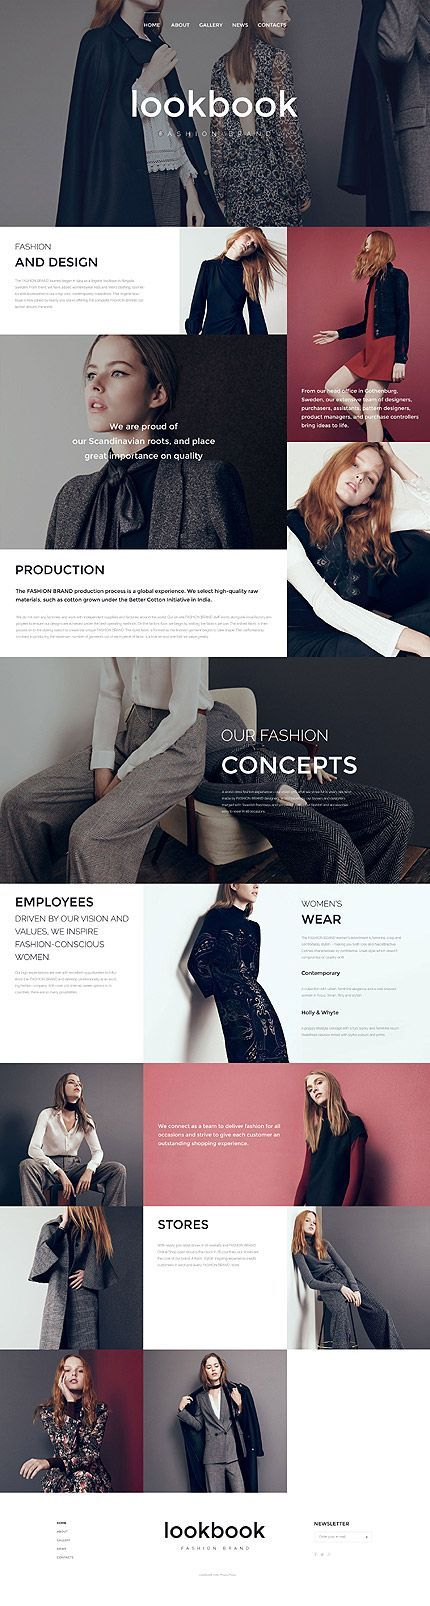 Beautiful Website Color Schemes | Color Schemes for Websites